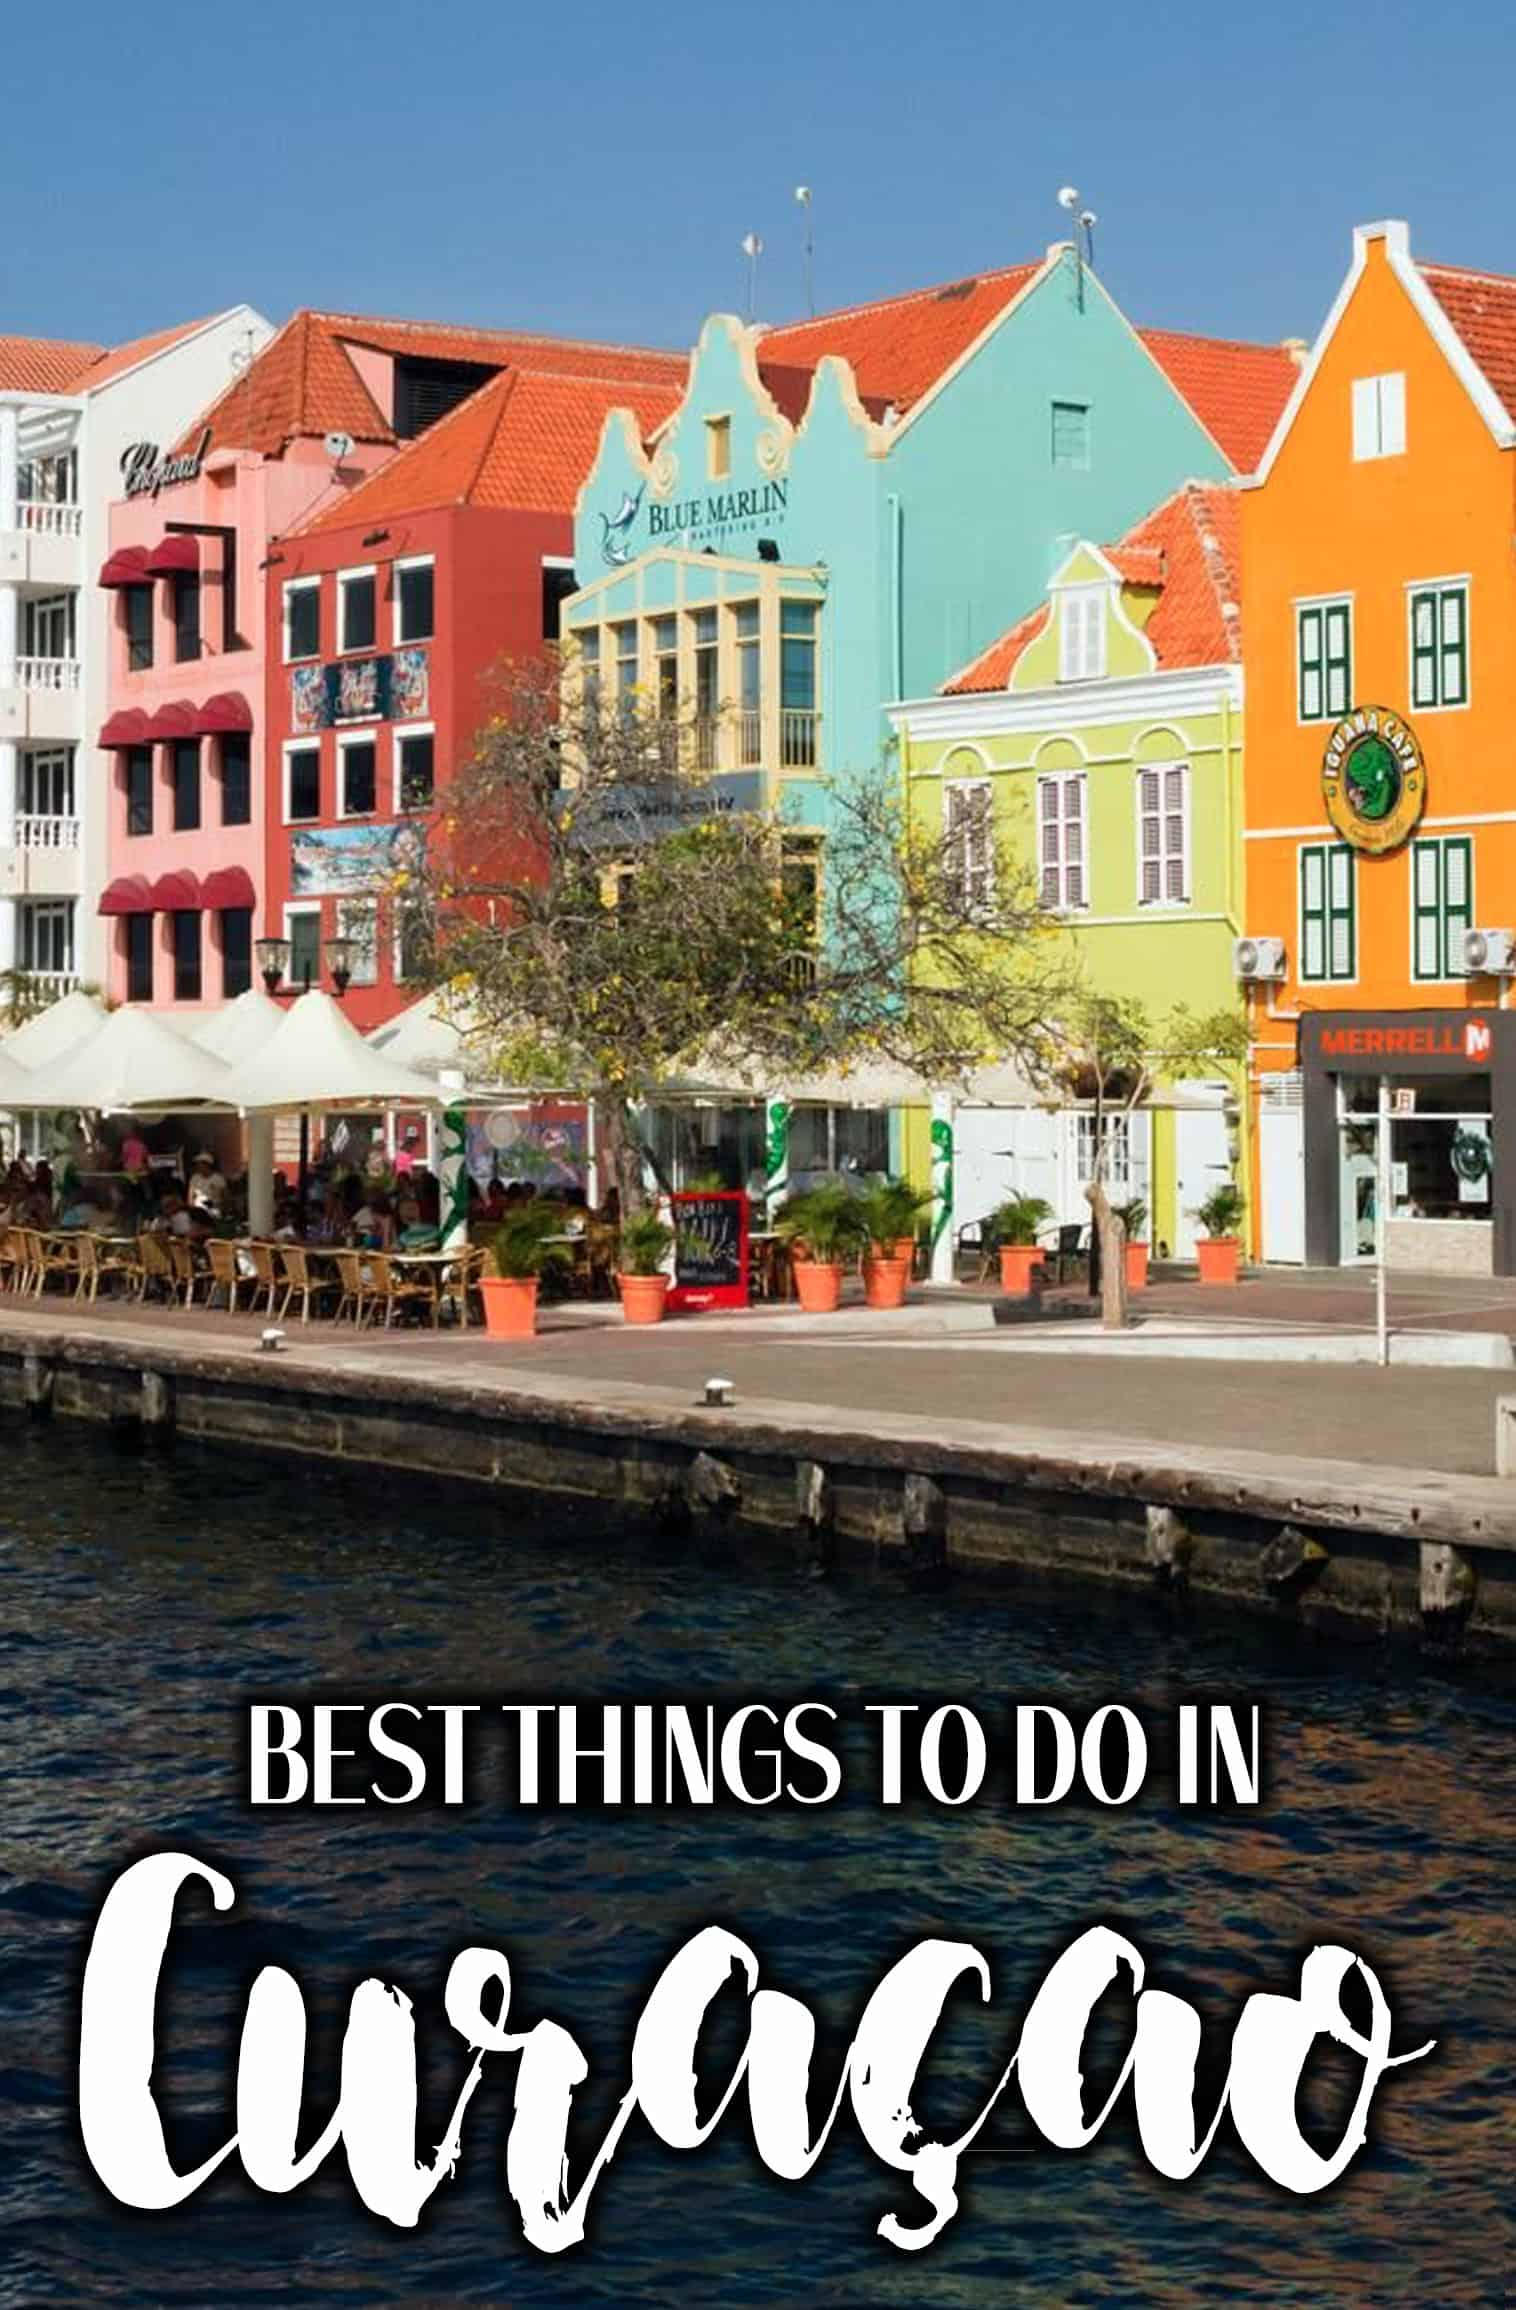 Best things to do in Curacao in 2 days